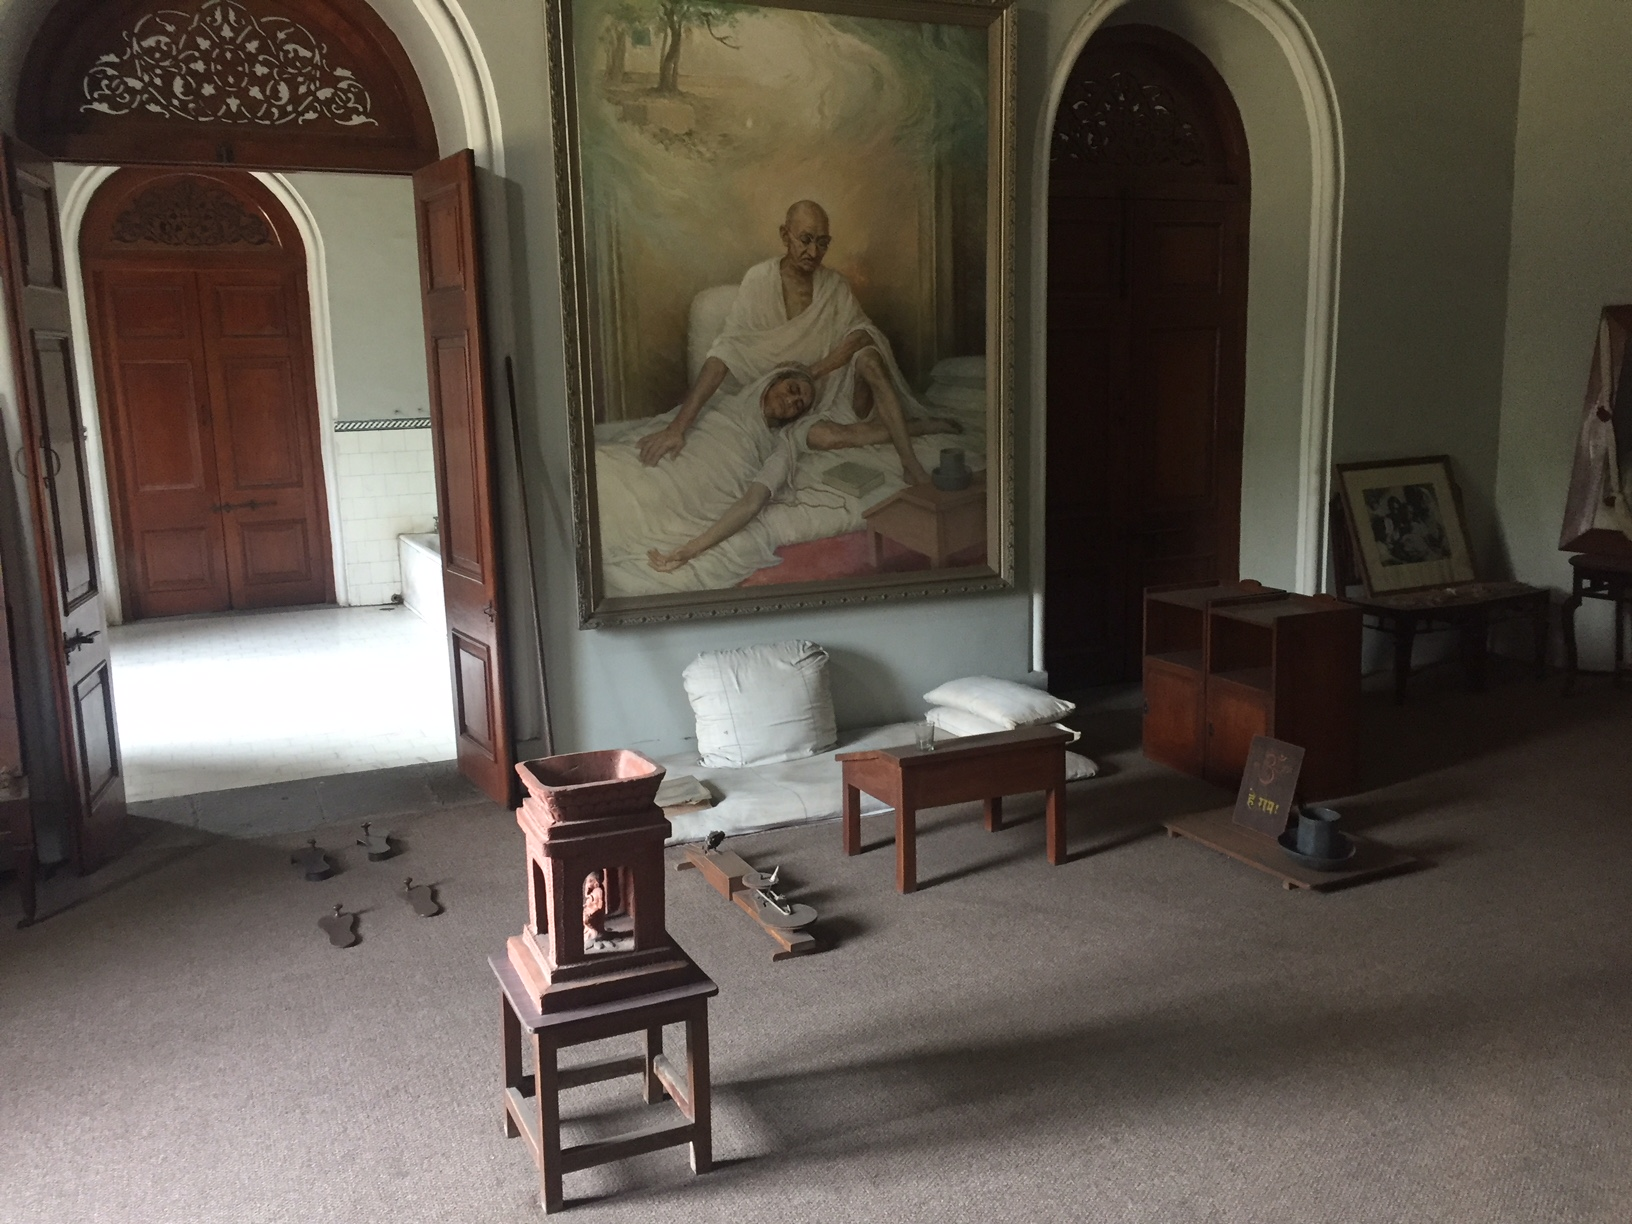 Aga Khan Palace - Gandhi's Table